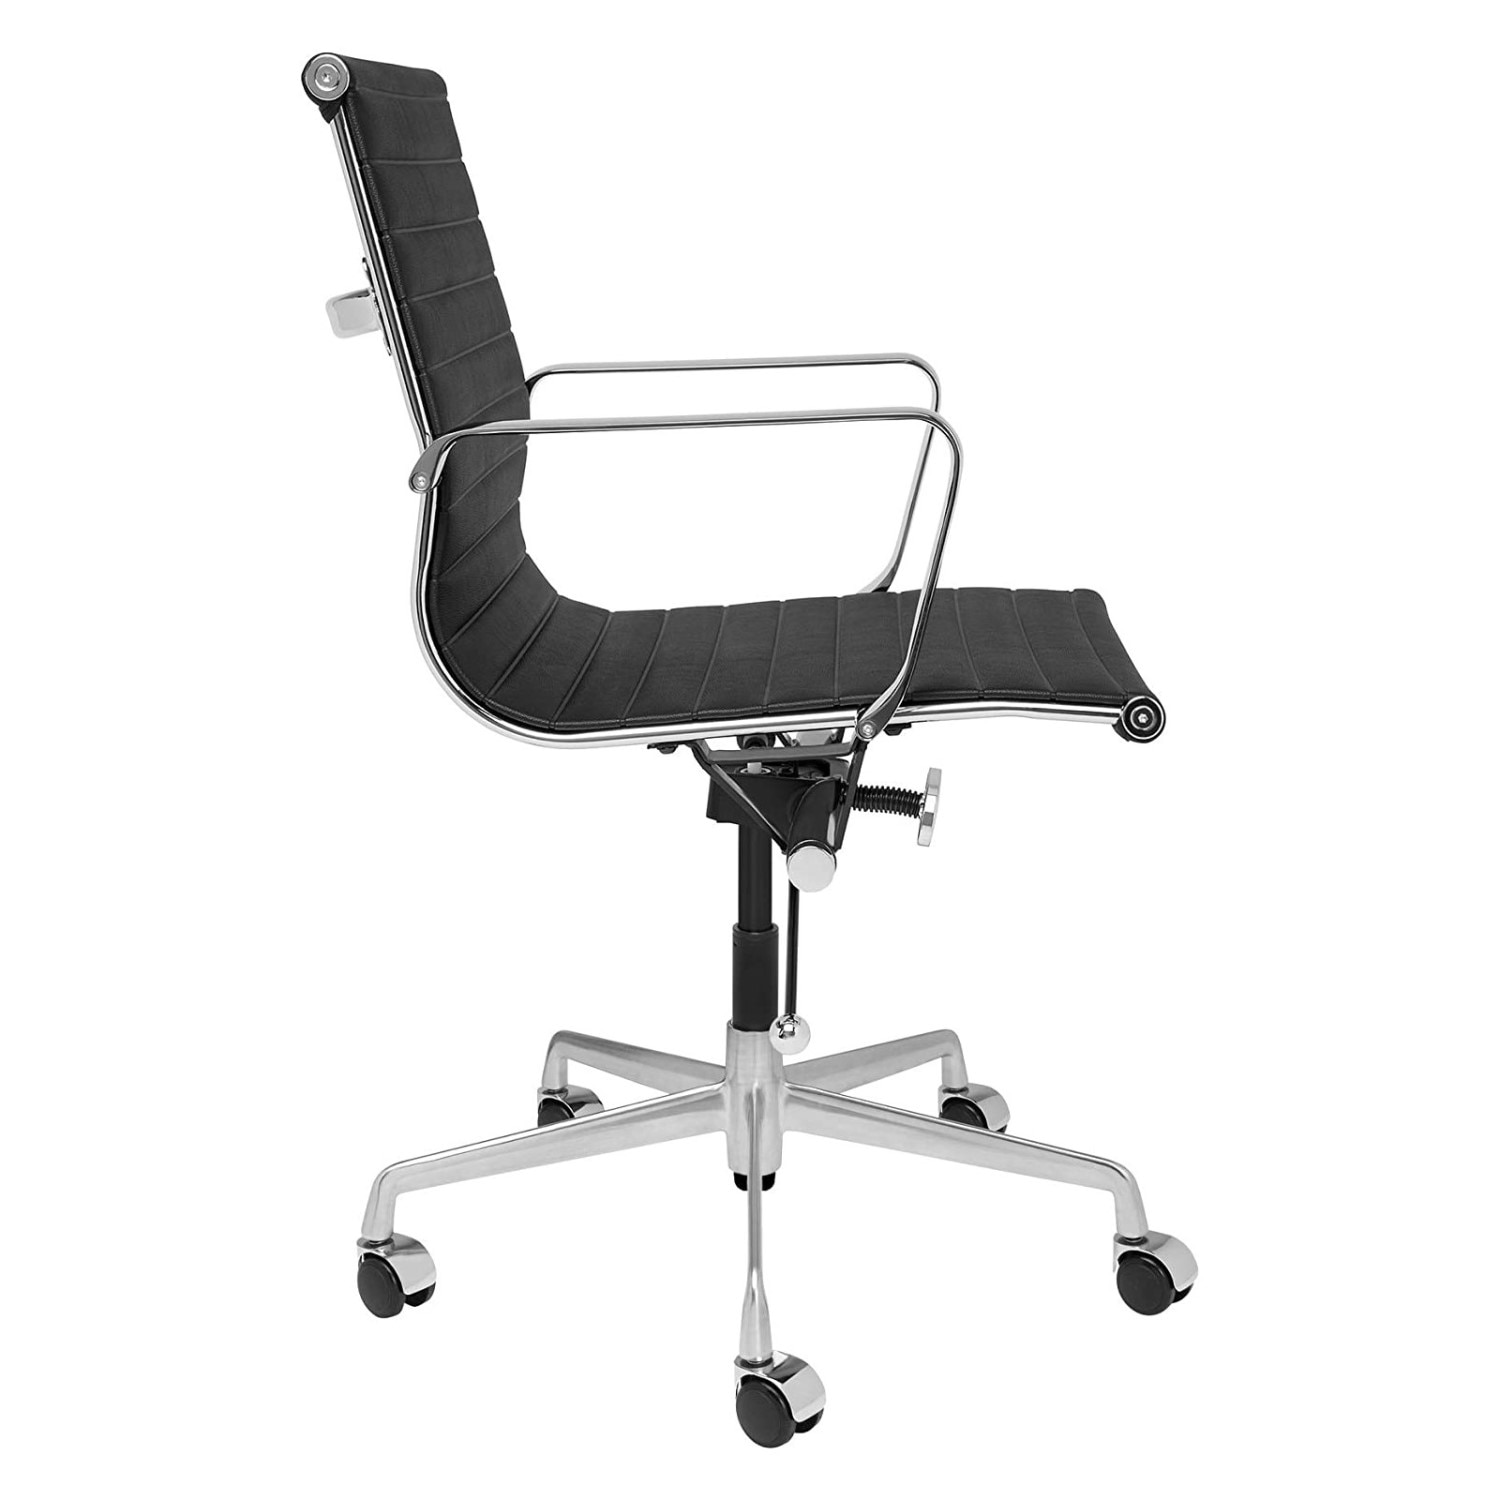 H51a5693ef3fa47f9a96644af0b5bf7beQ - Furgle Executive Office Chair Mid Back PU Leather with Arms Rest Tilt Gaming Chair Adjustable Height with Wheels Swivel Chairs